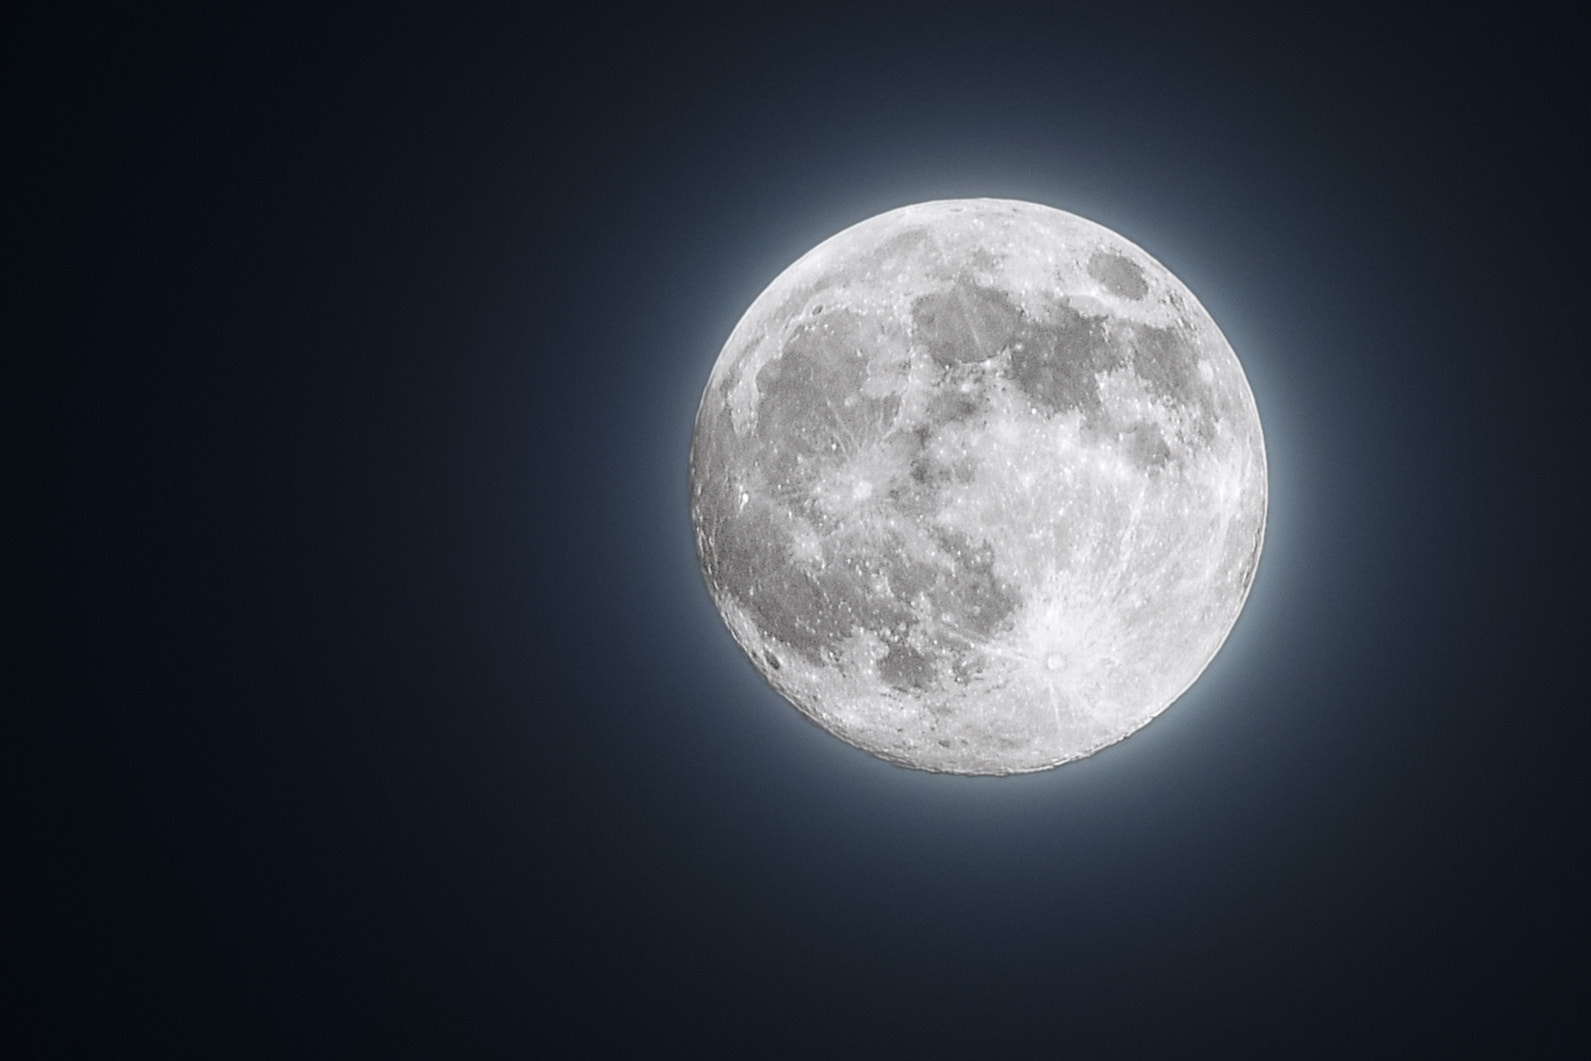 Photograph Fullmoon by Peste Razor on 500px